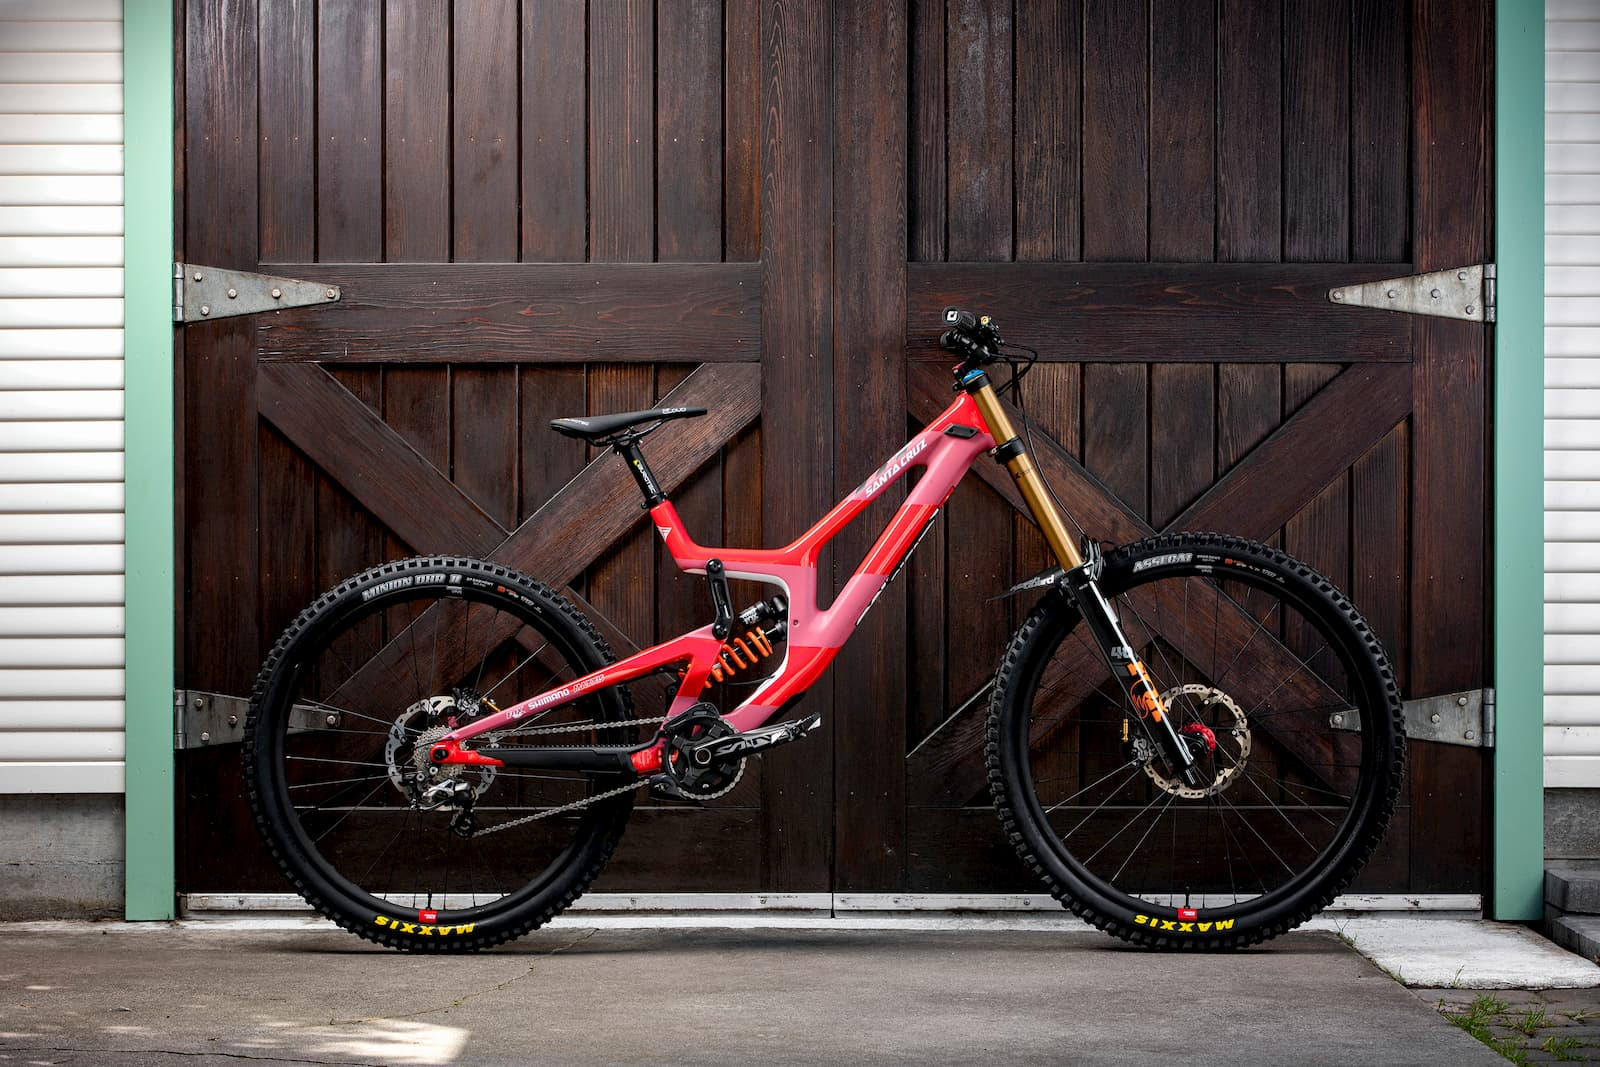 Santa Cruz Bicycles - Luca's 2020 Syndicate bike